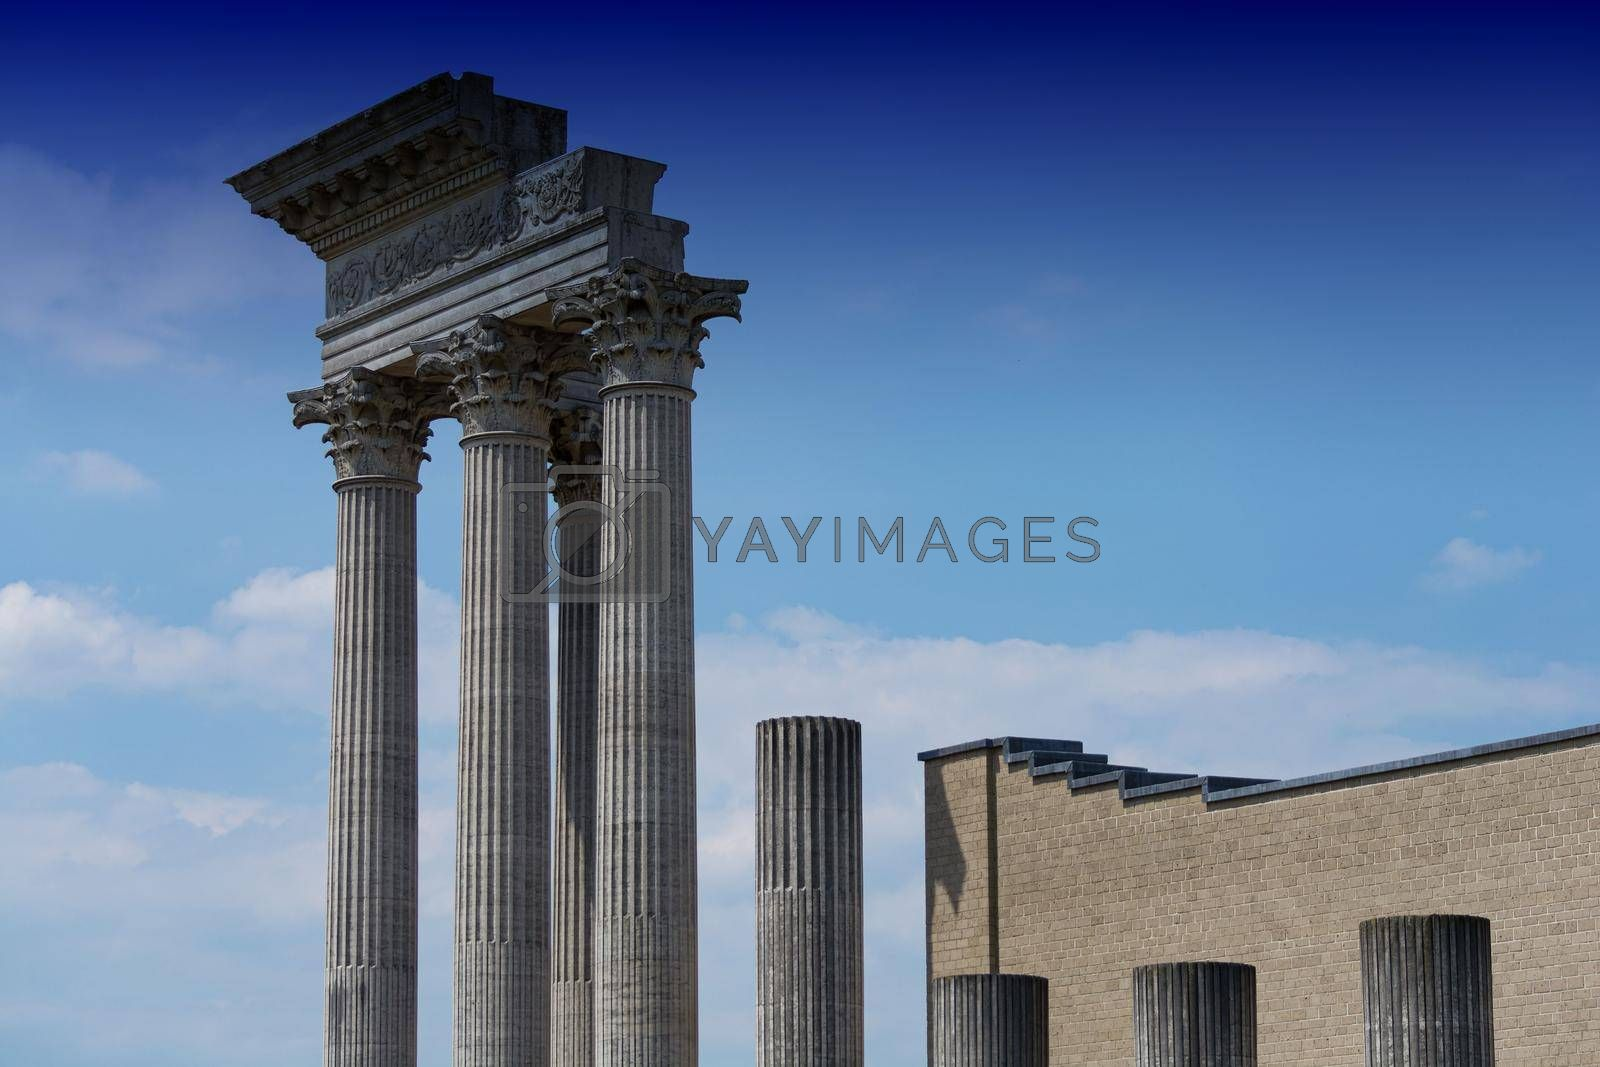 Royalty free image of Greek style pillars            by JFsPic